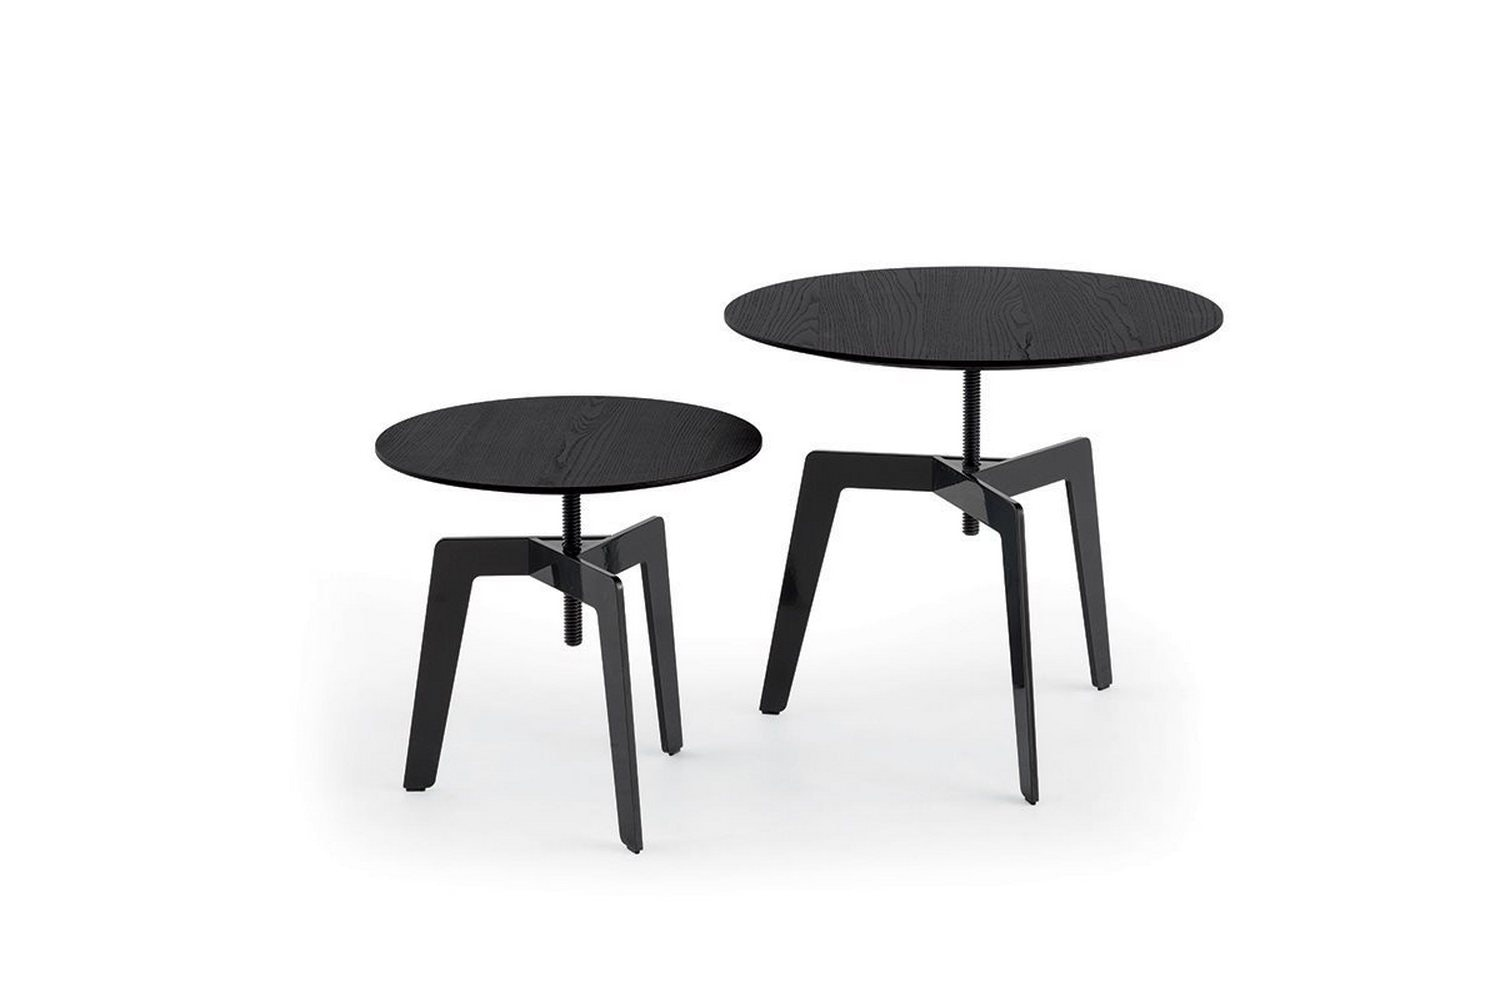 Tribeca Side Table by J. M. Massaud for Poliform